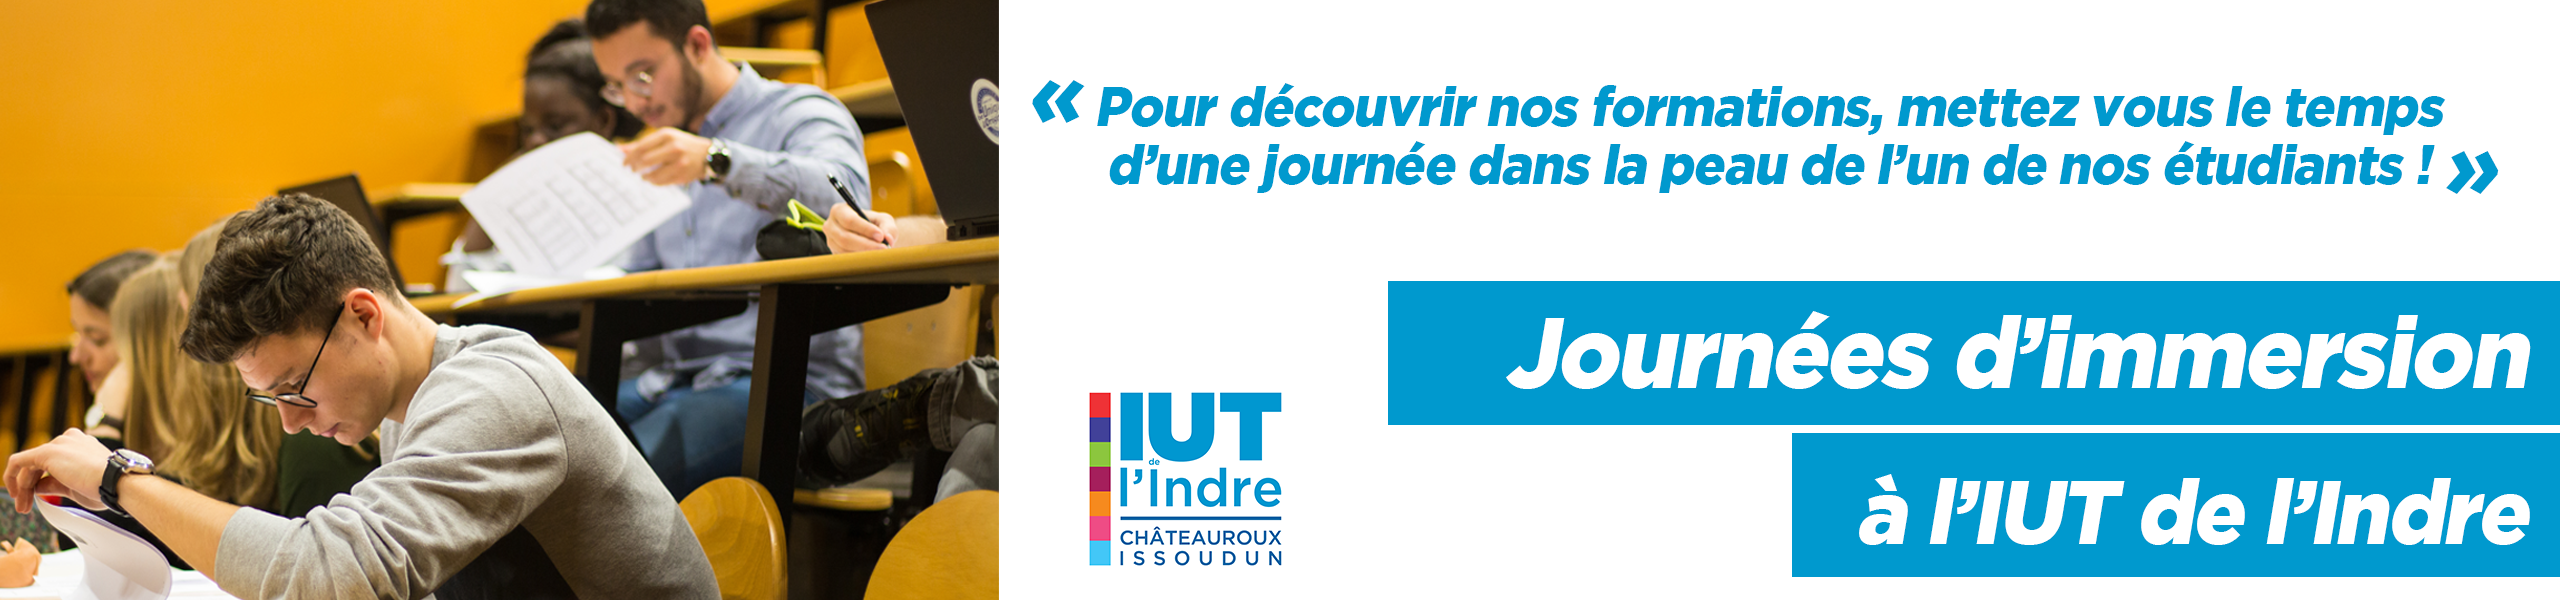 Journée Immersion DUT  - IUT Indre - R